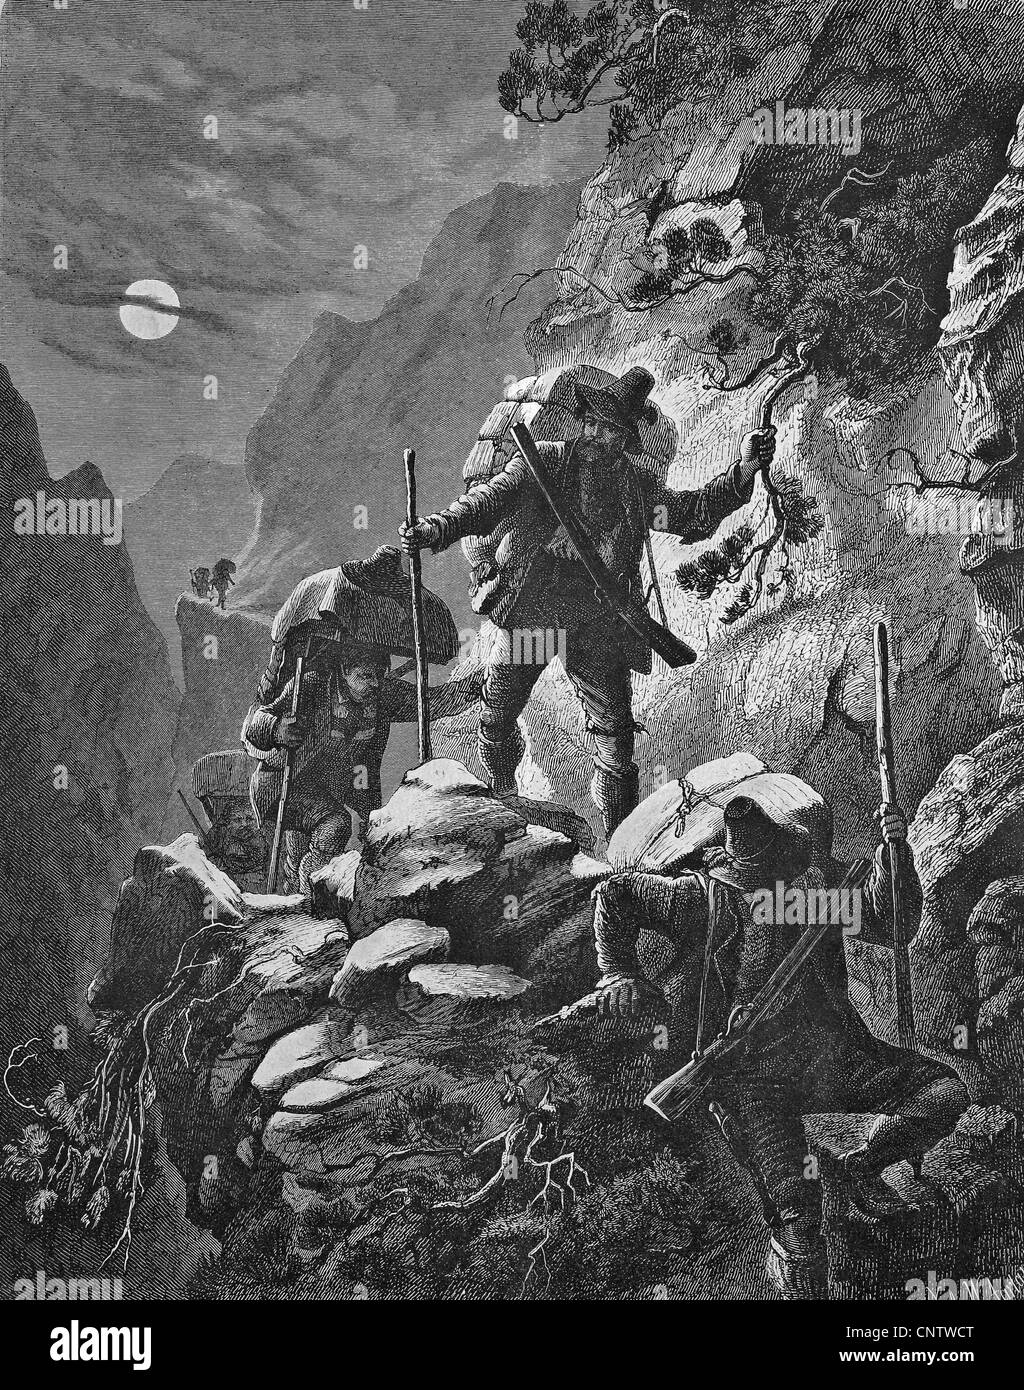 Nocturnal smugglers' run in the Alps, historical engraving, 1869 Stock Photo